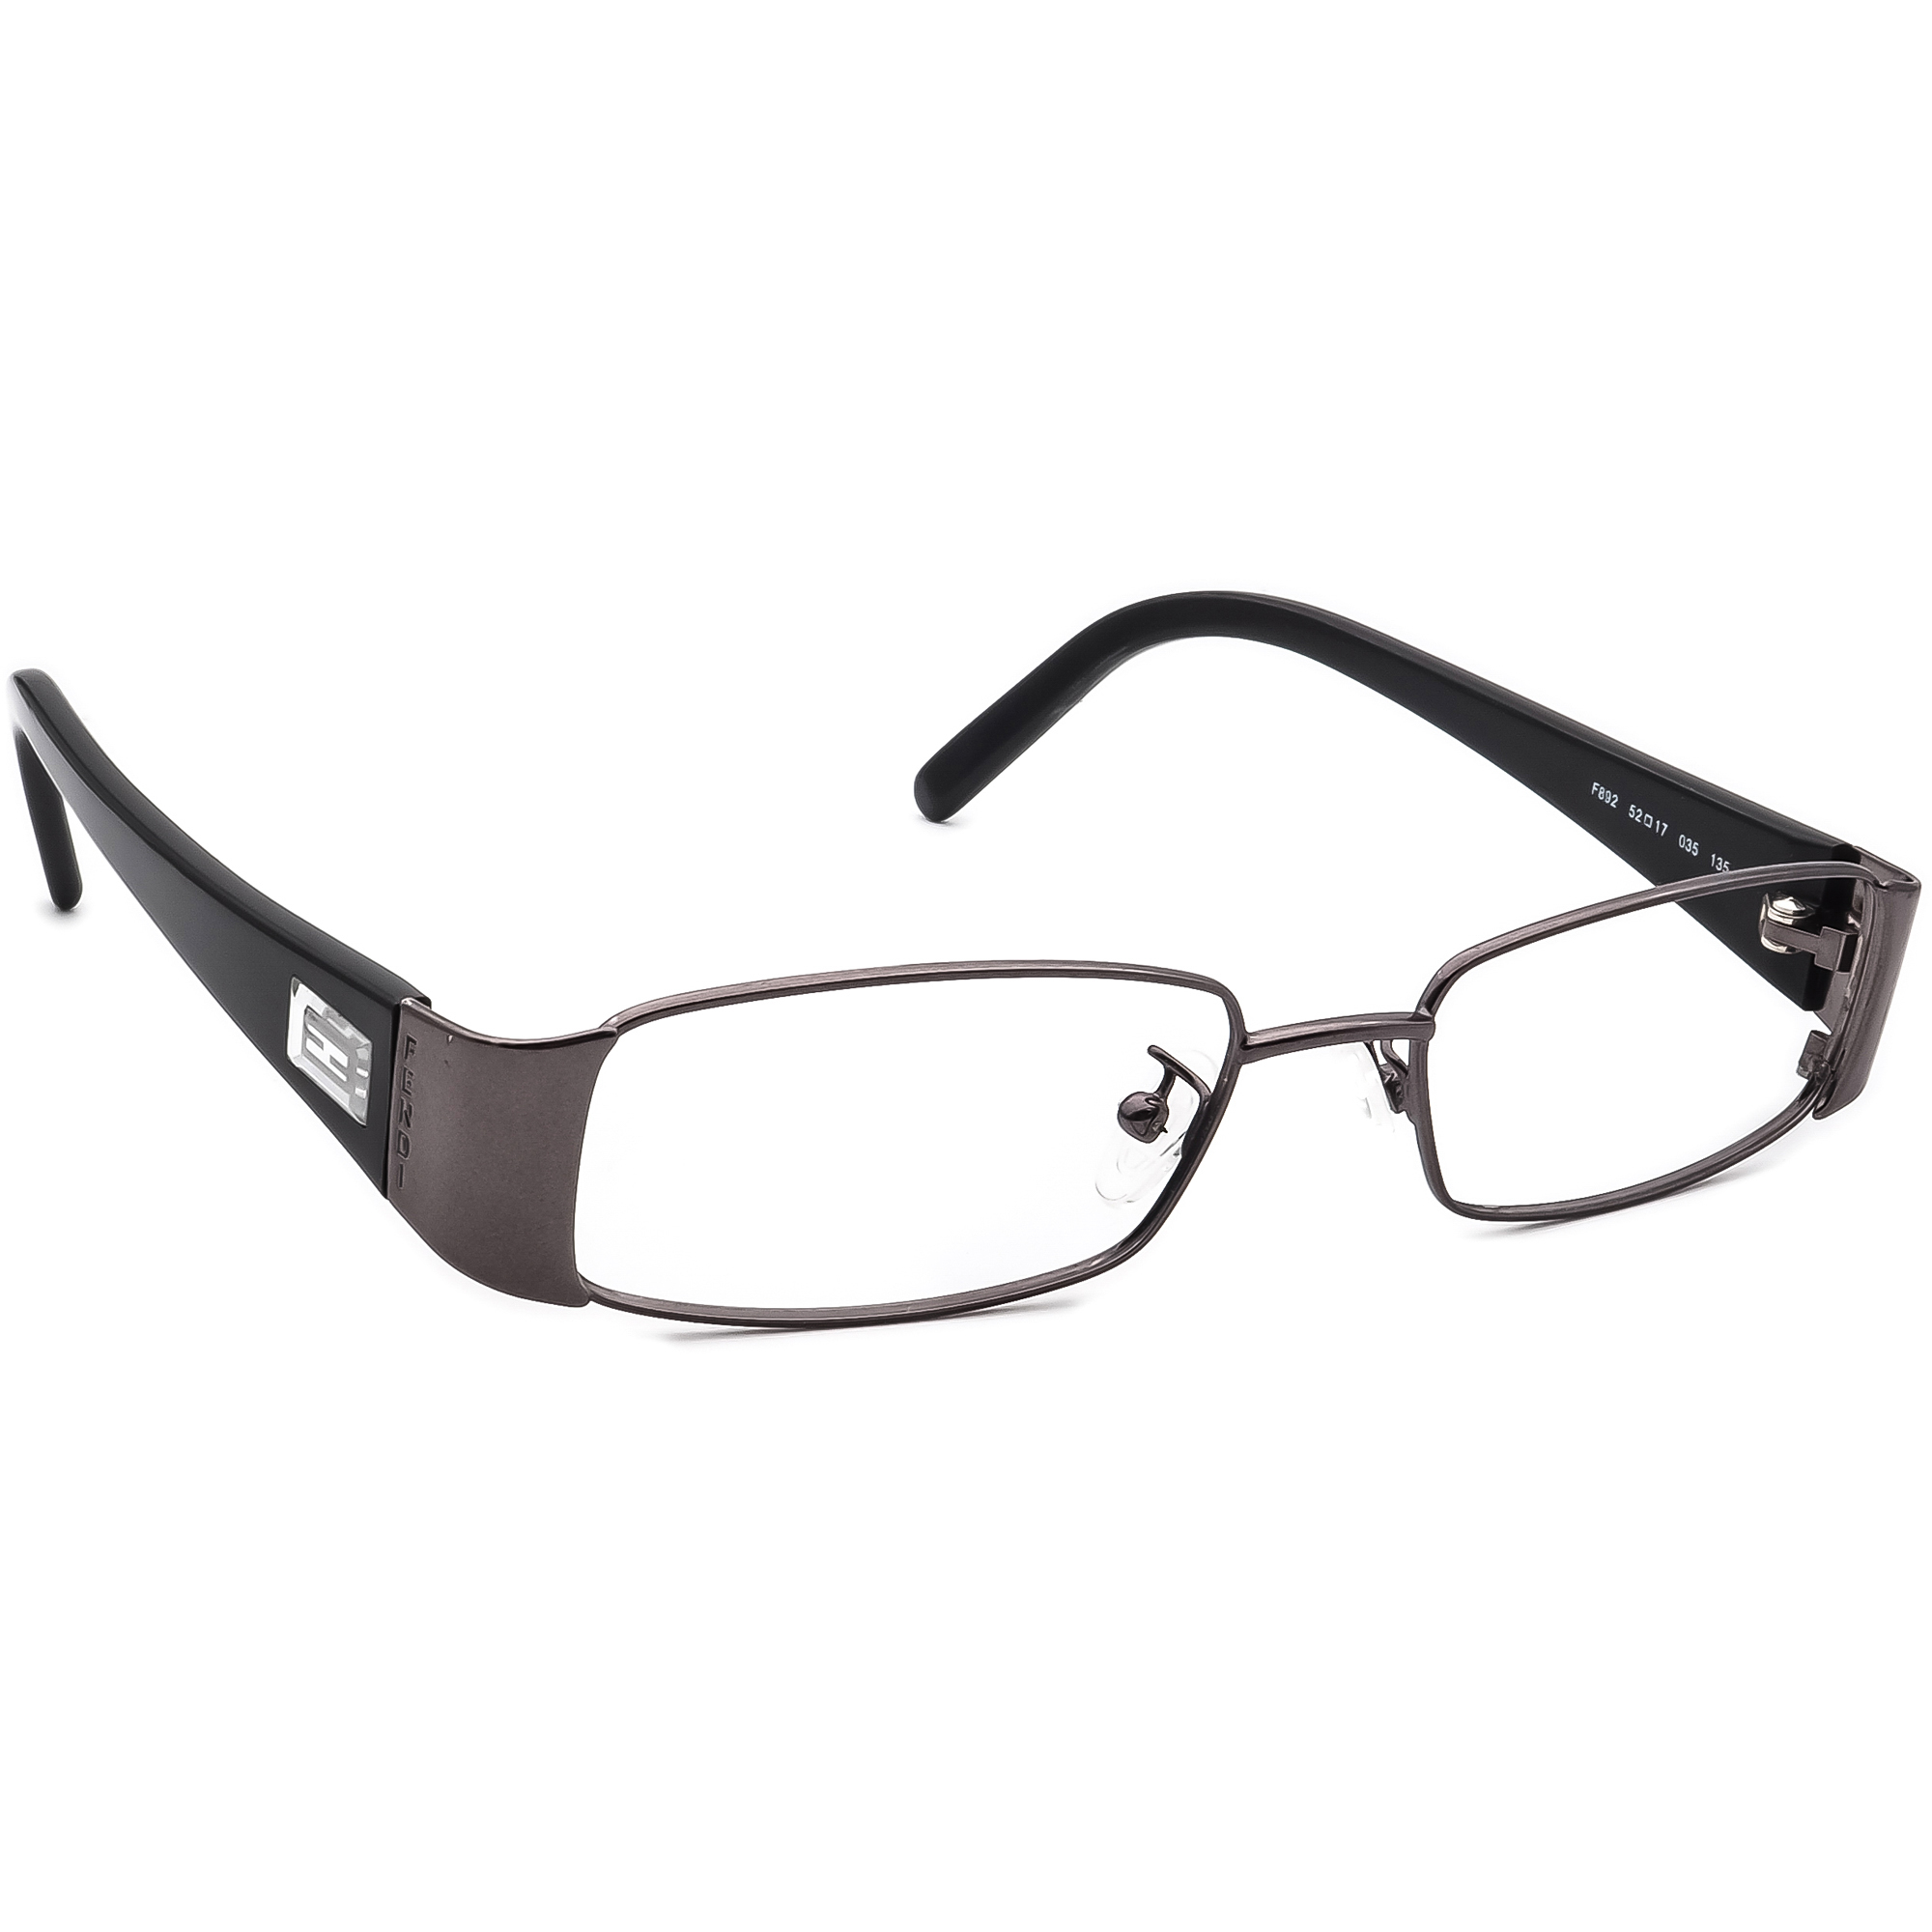 Fendi F892 035 Eyeglasses